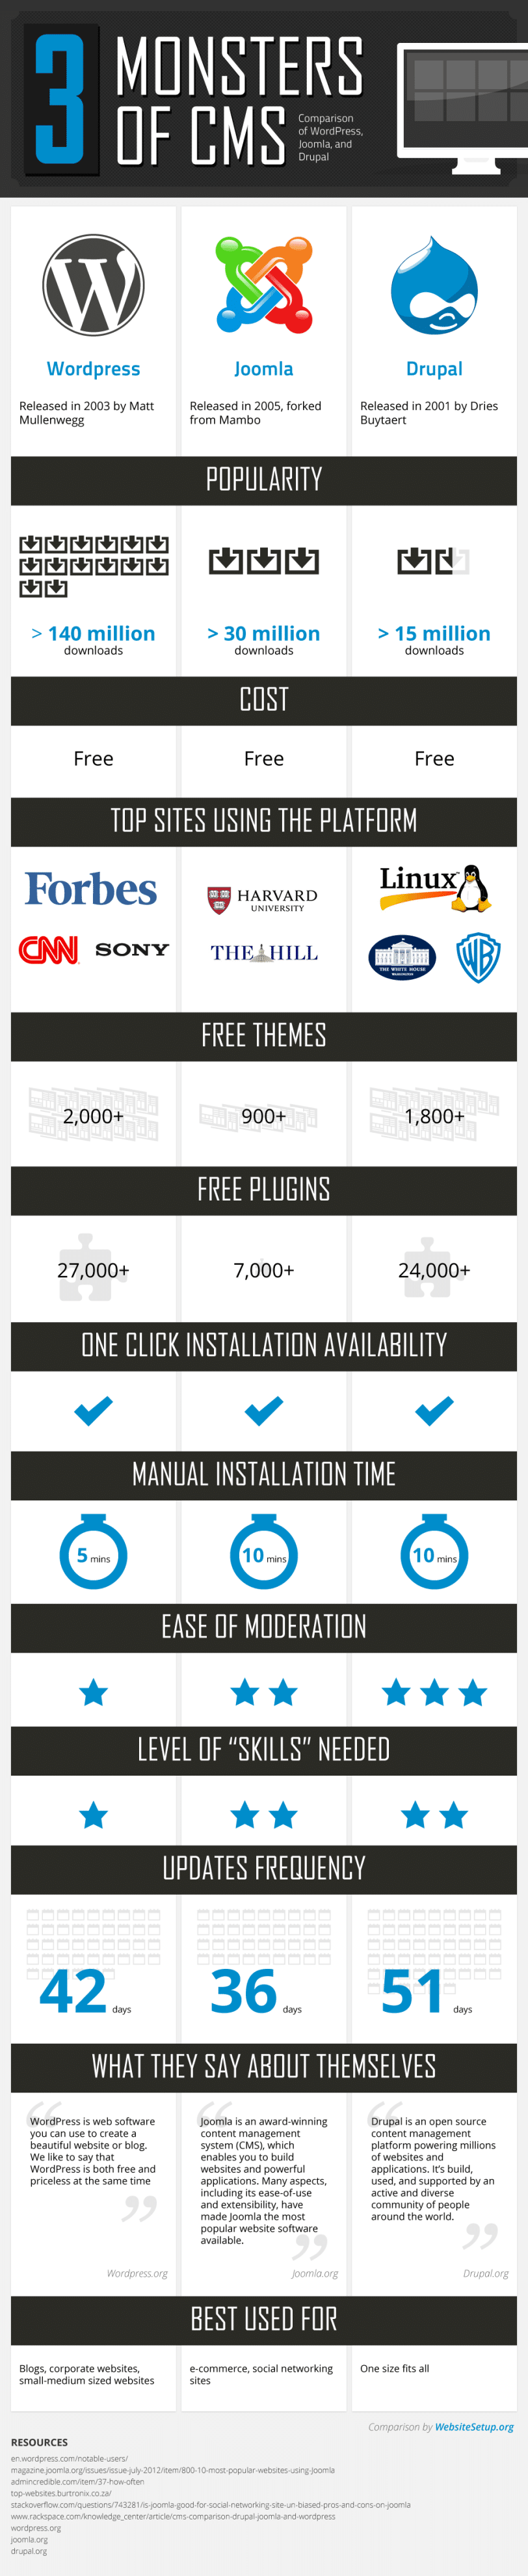 infographie comparaison de trois cms wordpress joomla et drupal. Black Bedroom Furniture Sets. Home Design Ideas